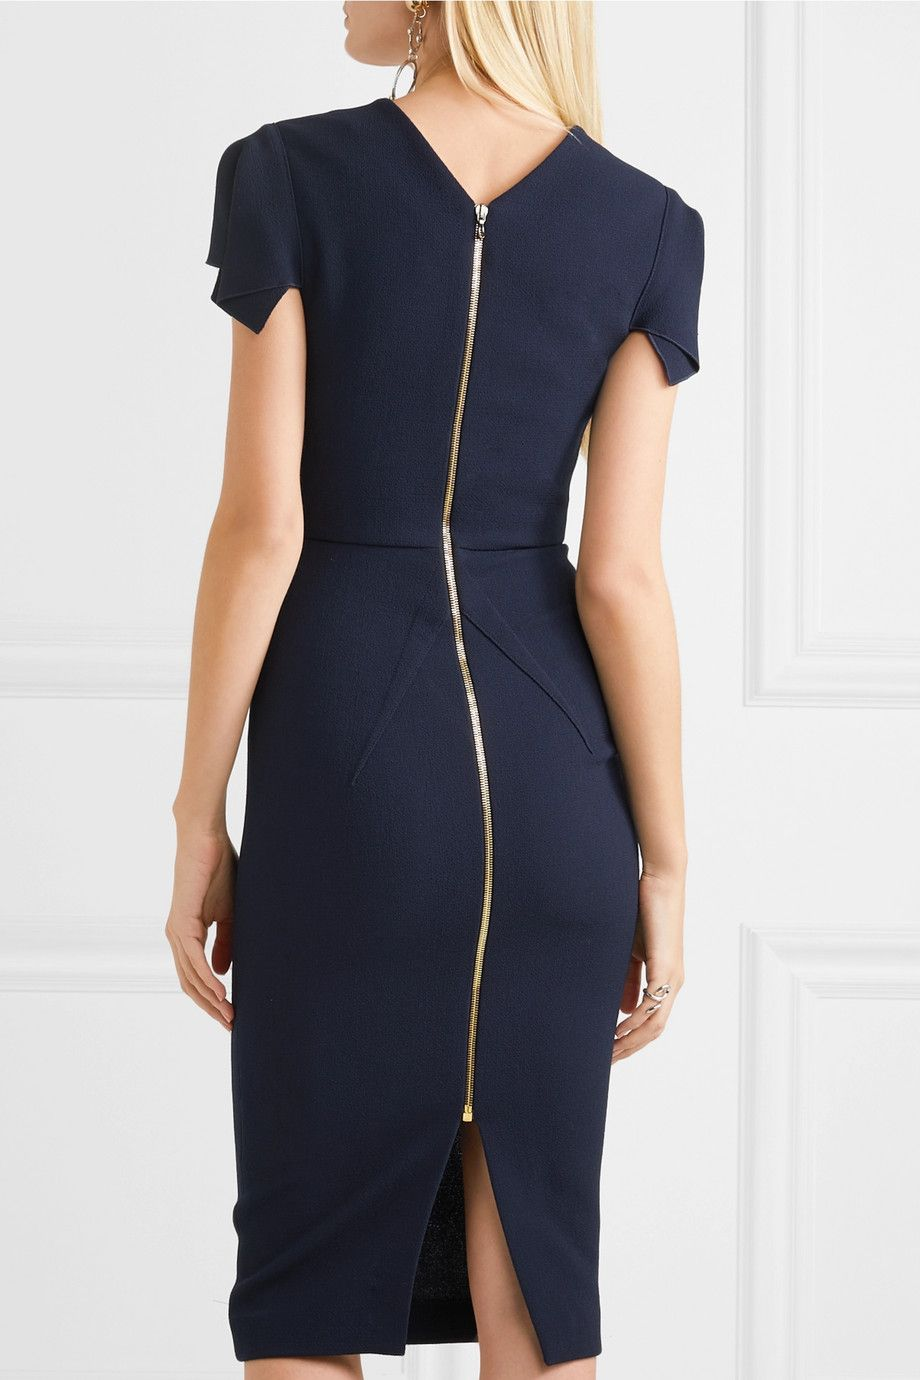 Outlet Looking For Discount Purchase Royston Wool-crepe Midi Dress - Navy Roland Mouret Enjoy For Sale Free Shipping Cheap Quality Online Cheapest VkyUOZJ